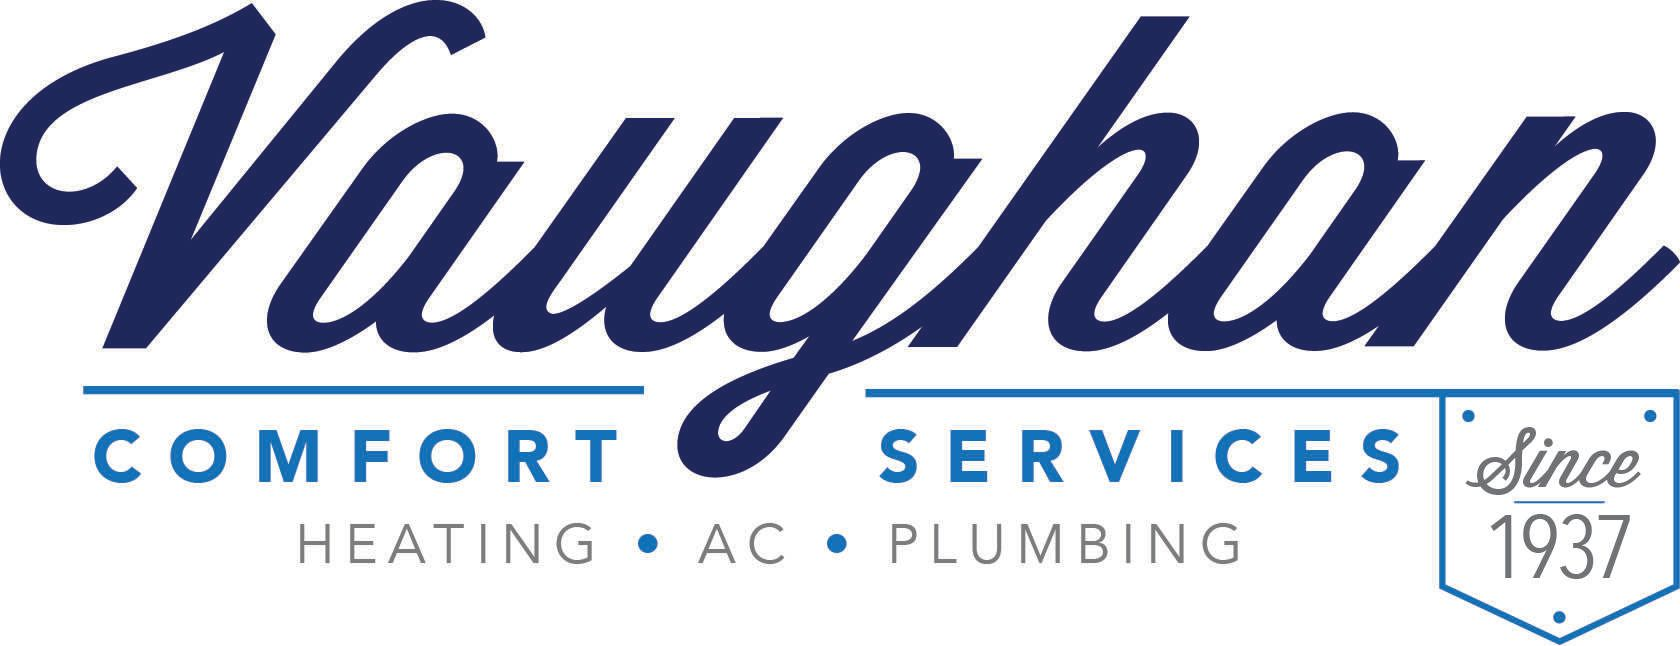 Superior HVAC & Plumbing Services and from Vaughan Comfort Services in Magnolia, NJ